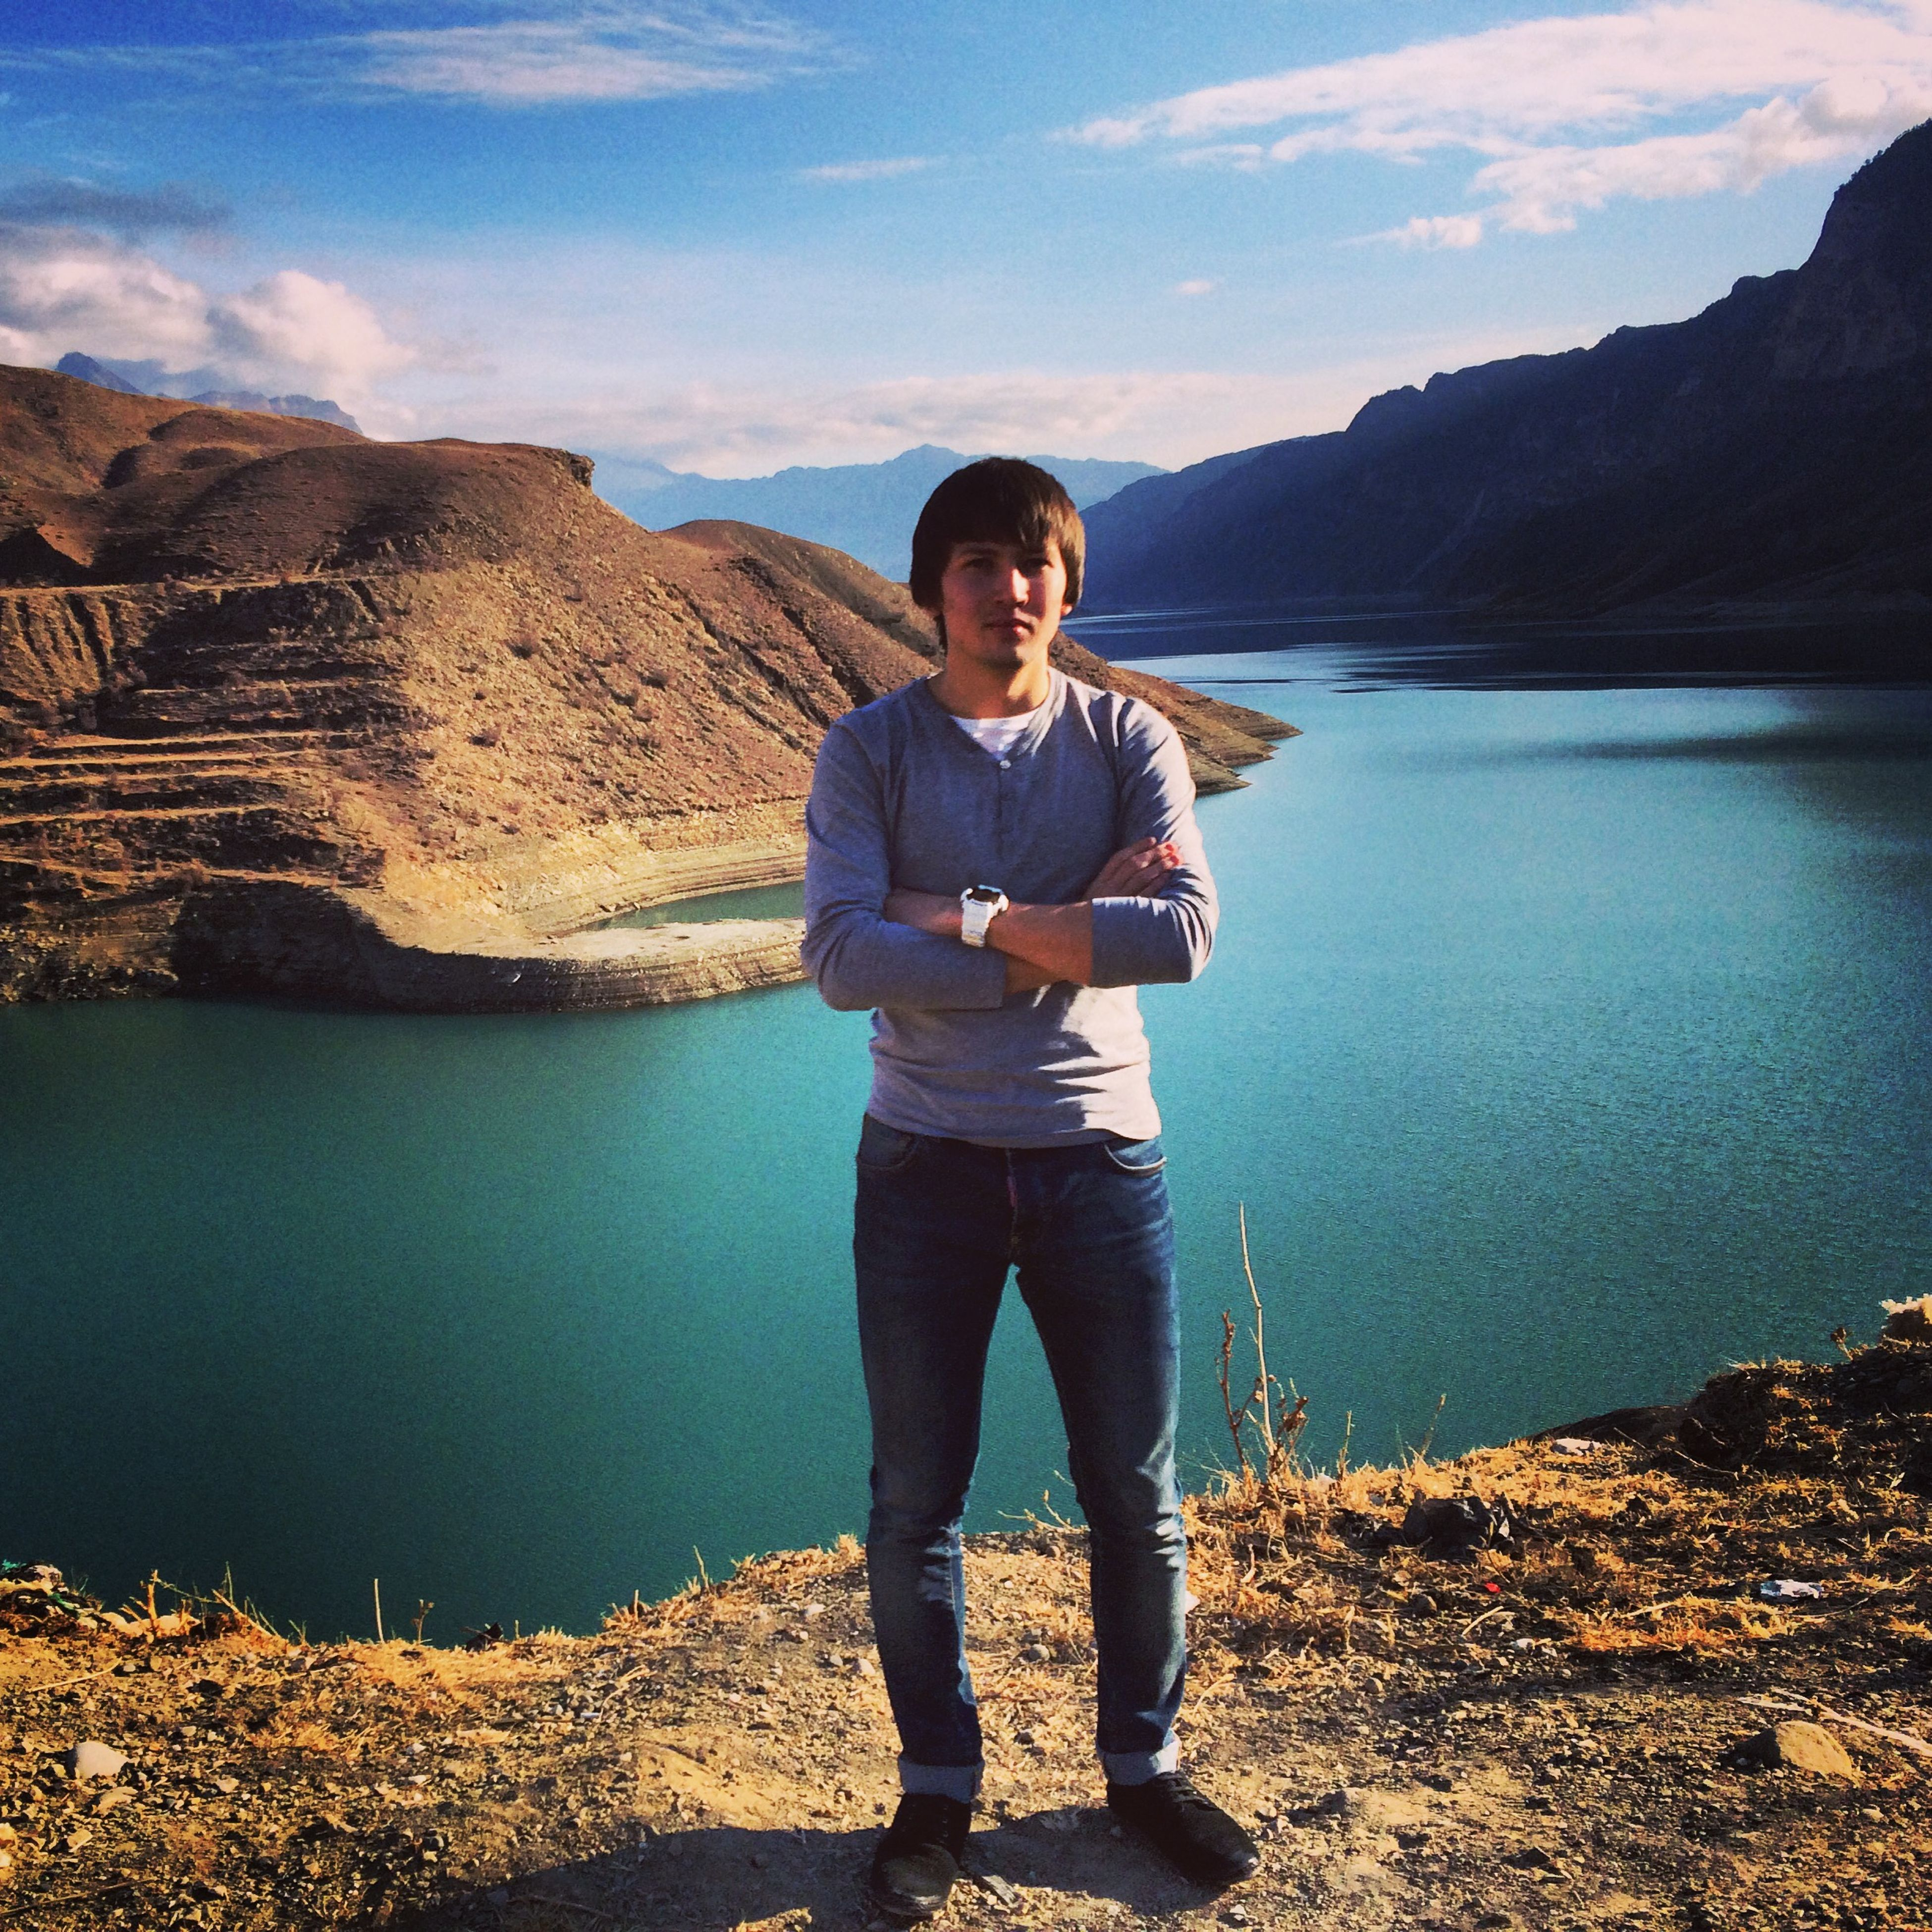 lifestyles, casual clothing, water, leisure activity, standing, young adult, full length, person, portrait, looking at camera, sky, mountain, young men, front view, sunglasses, rock - object, three quarter length